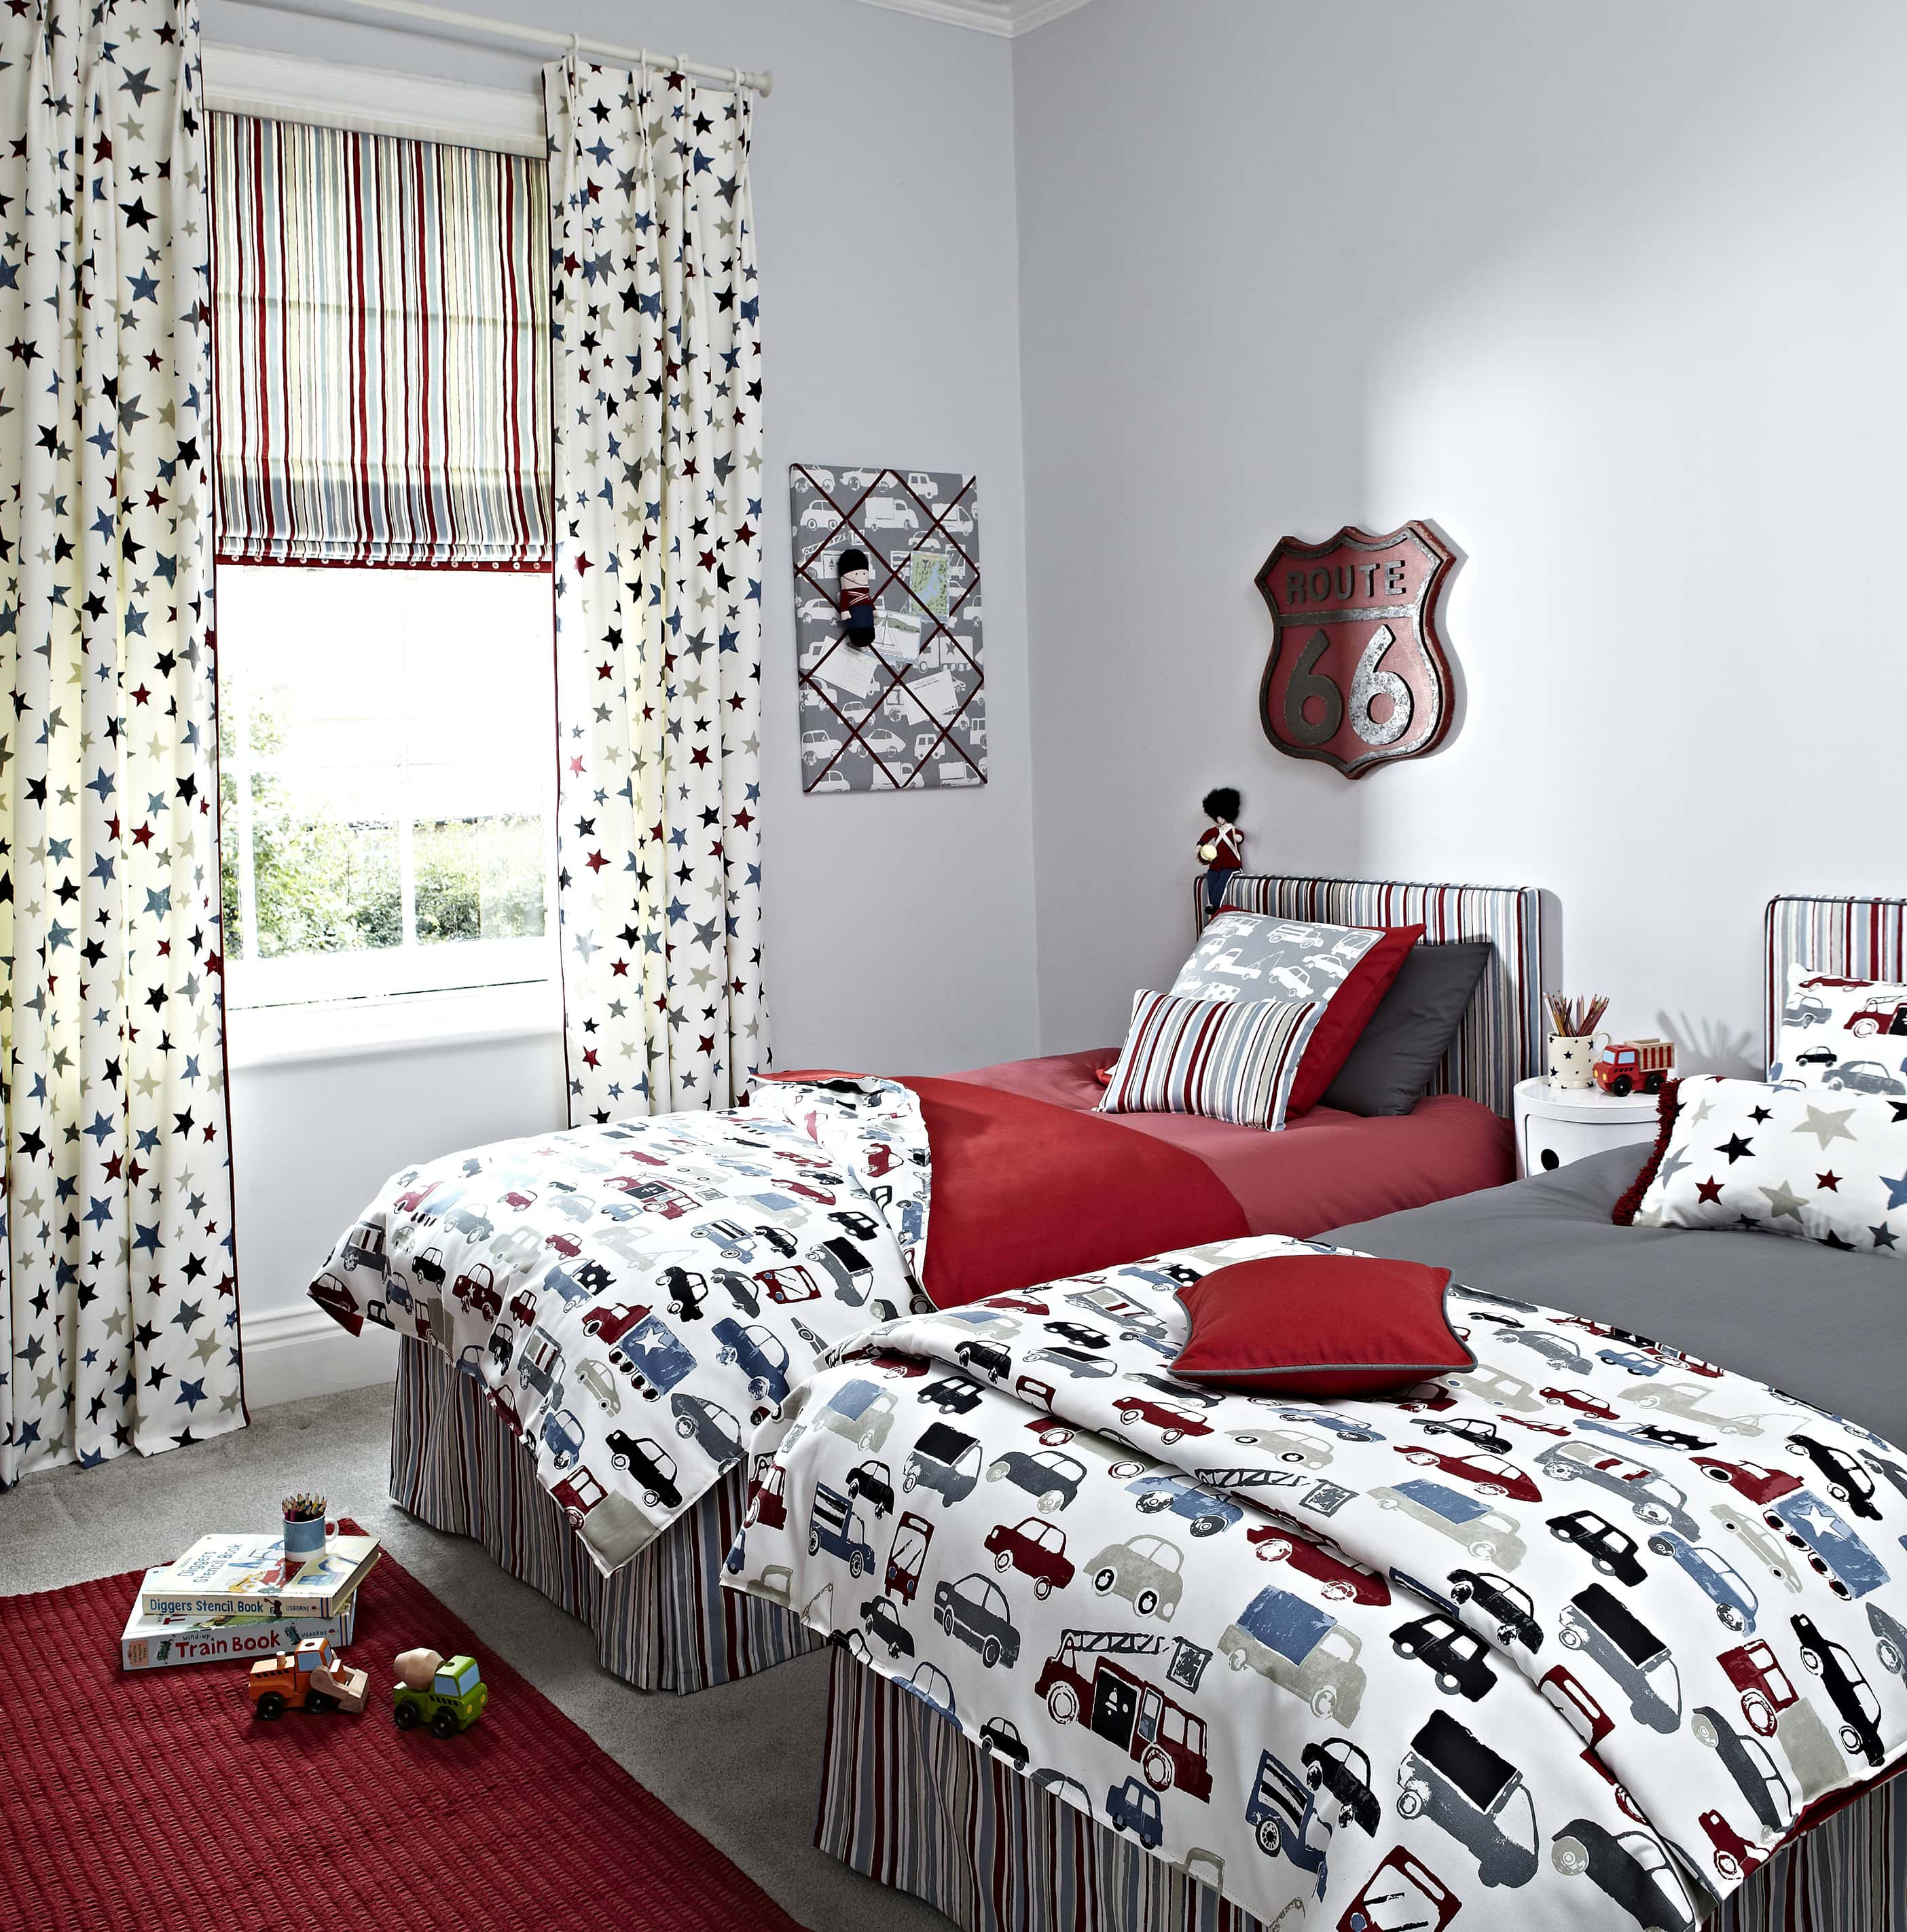 Children 39 s blinds norwich sunblinds for Blinds for kids rooms